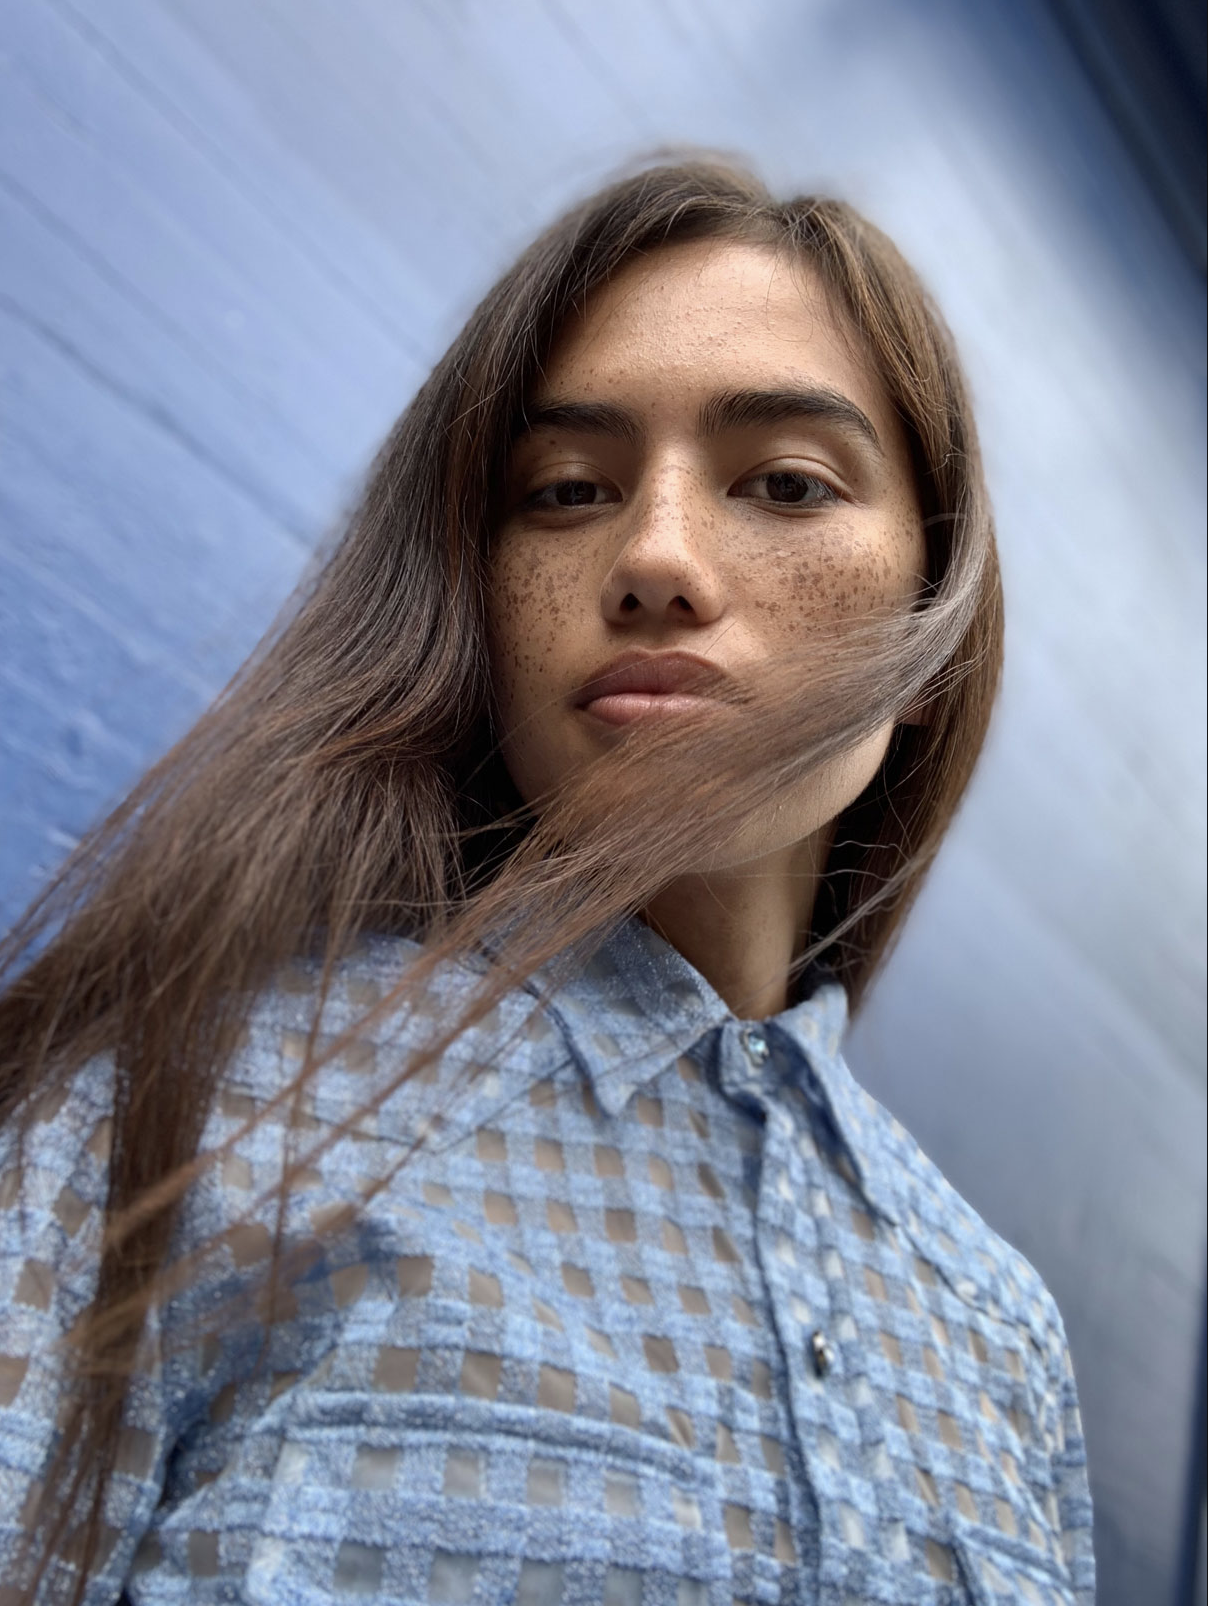 iPhone XS: Why It's A Whole New Camera - Halide